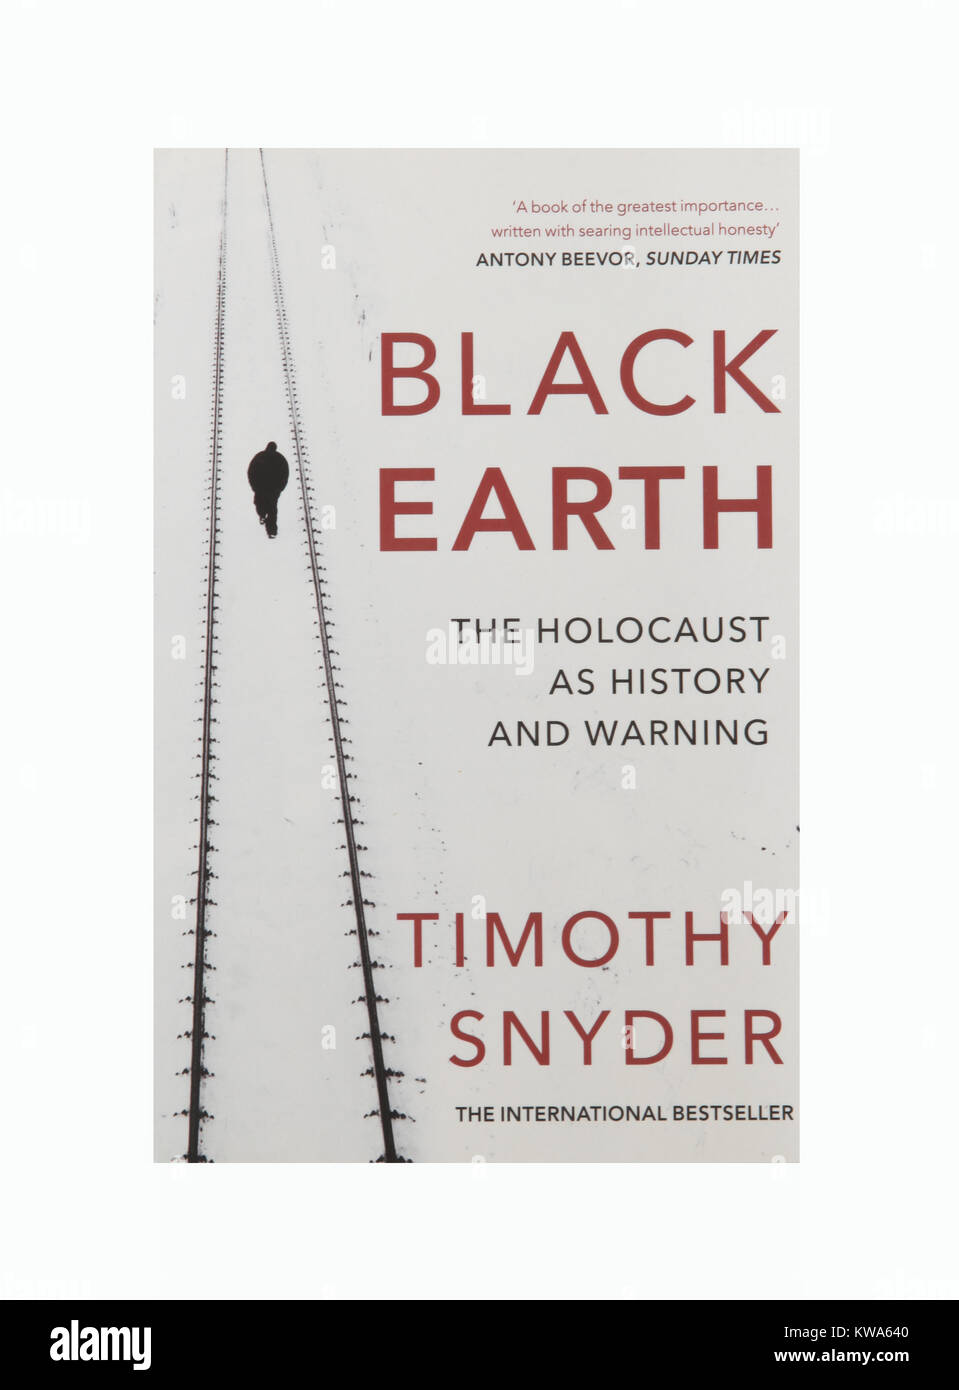 The book Black Earth - The Holocaust as History and Warning by Timothy Snyder - Stock Image